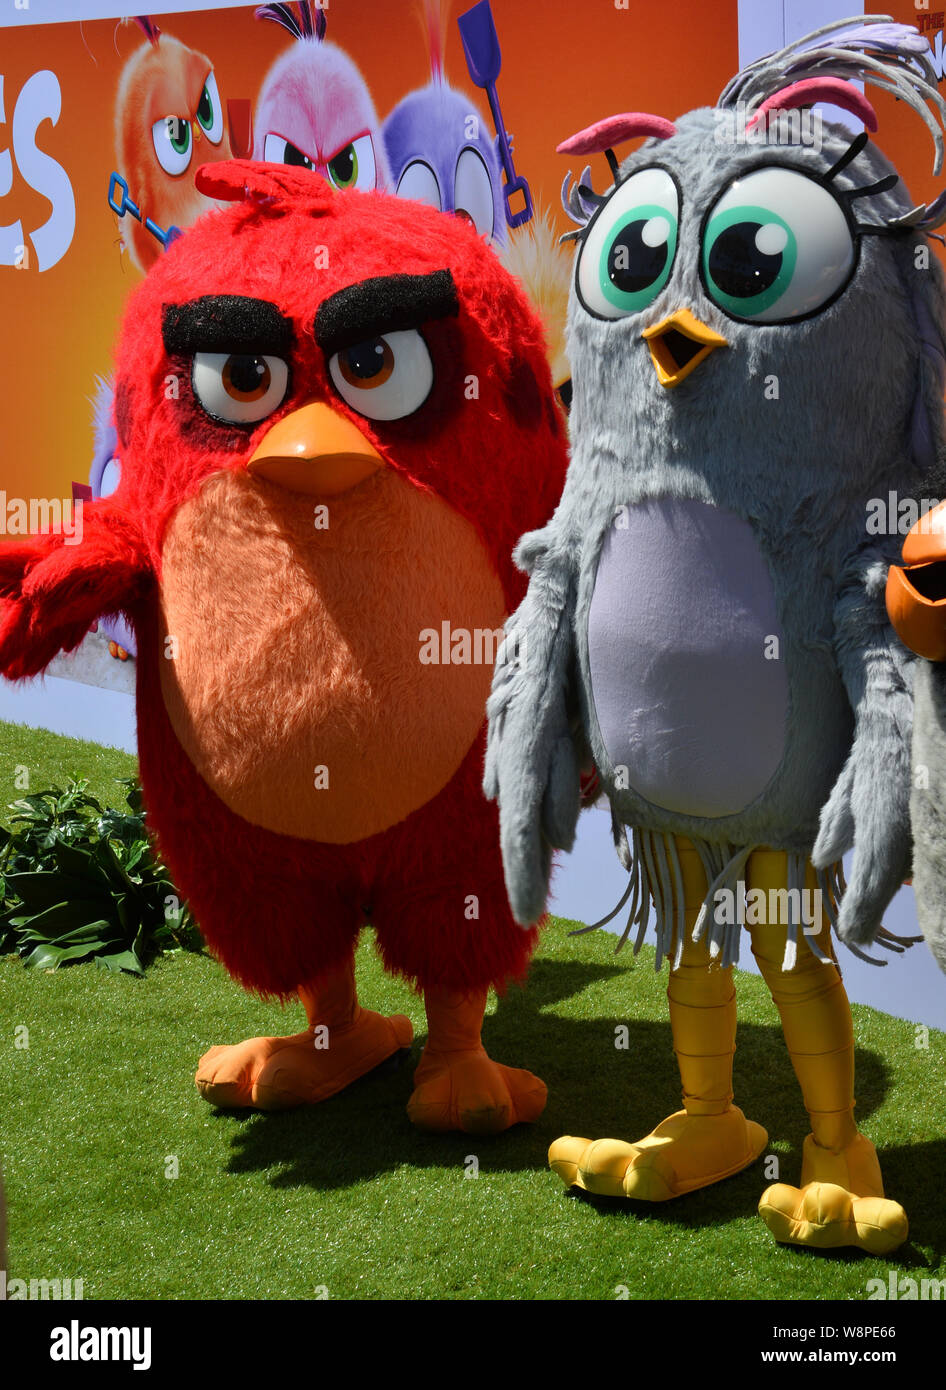 Angry Birds 2 High Resolution Stock Photography and Images - Alamy